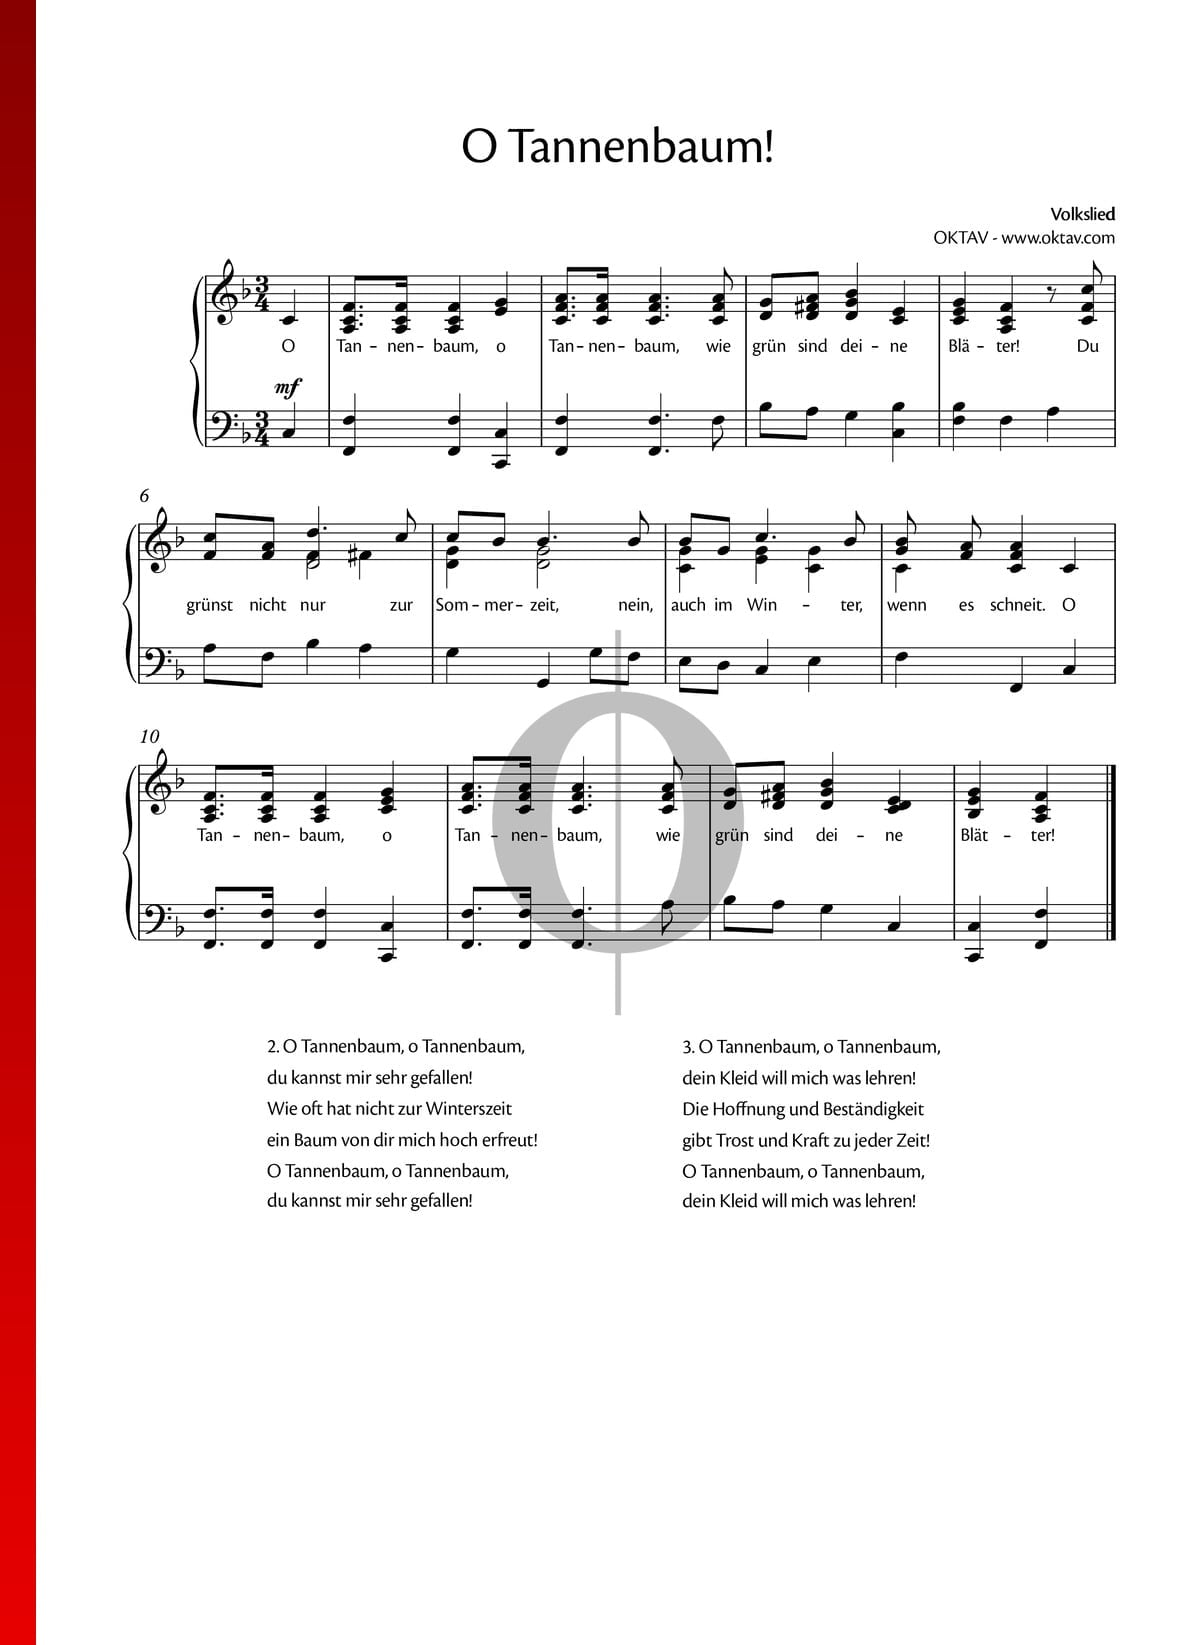 Oh Tannenbaum Noten Keyboard.Oh Tannenbaum Sheet Music Piano Voice Pdf Download